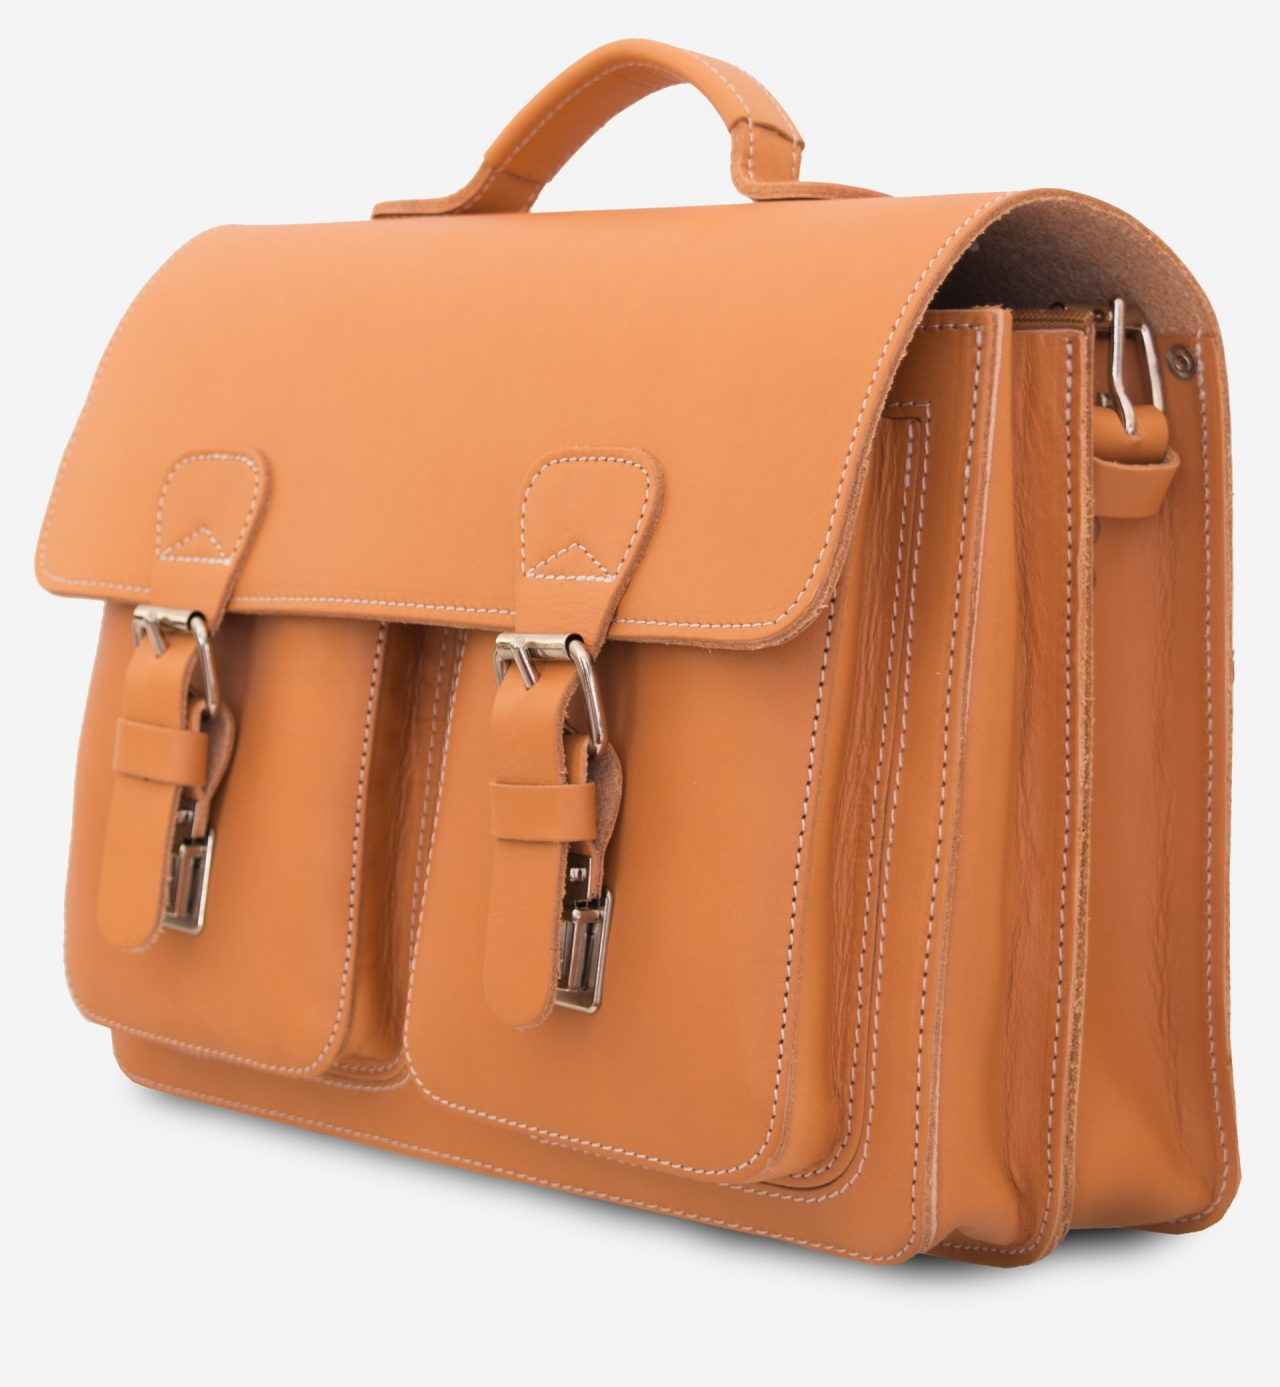 Side view of tan leather professor satchel with 2 compartments and 2 front pockets.